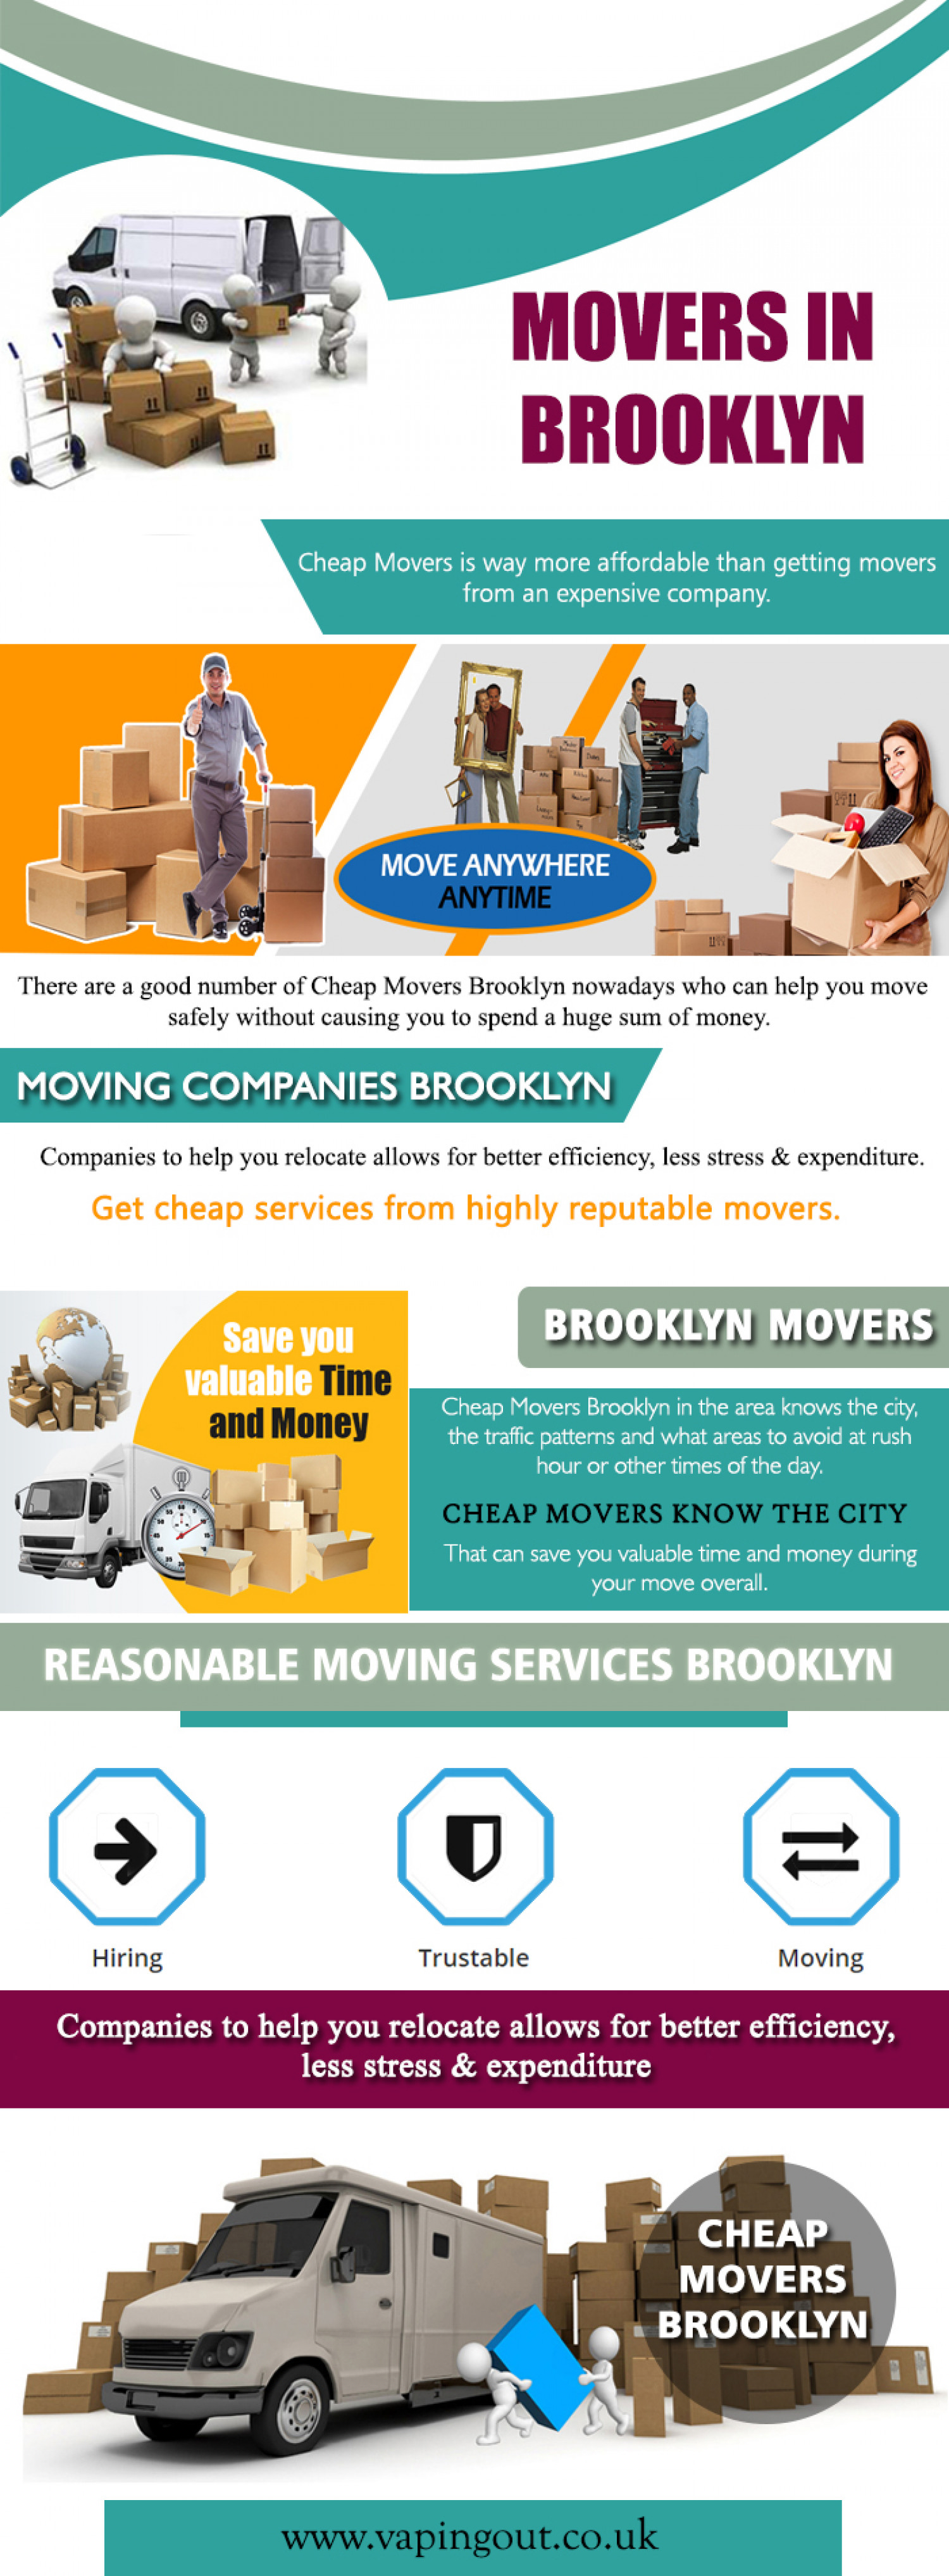 Moving Companies Brooklyn Infographic